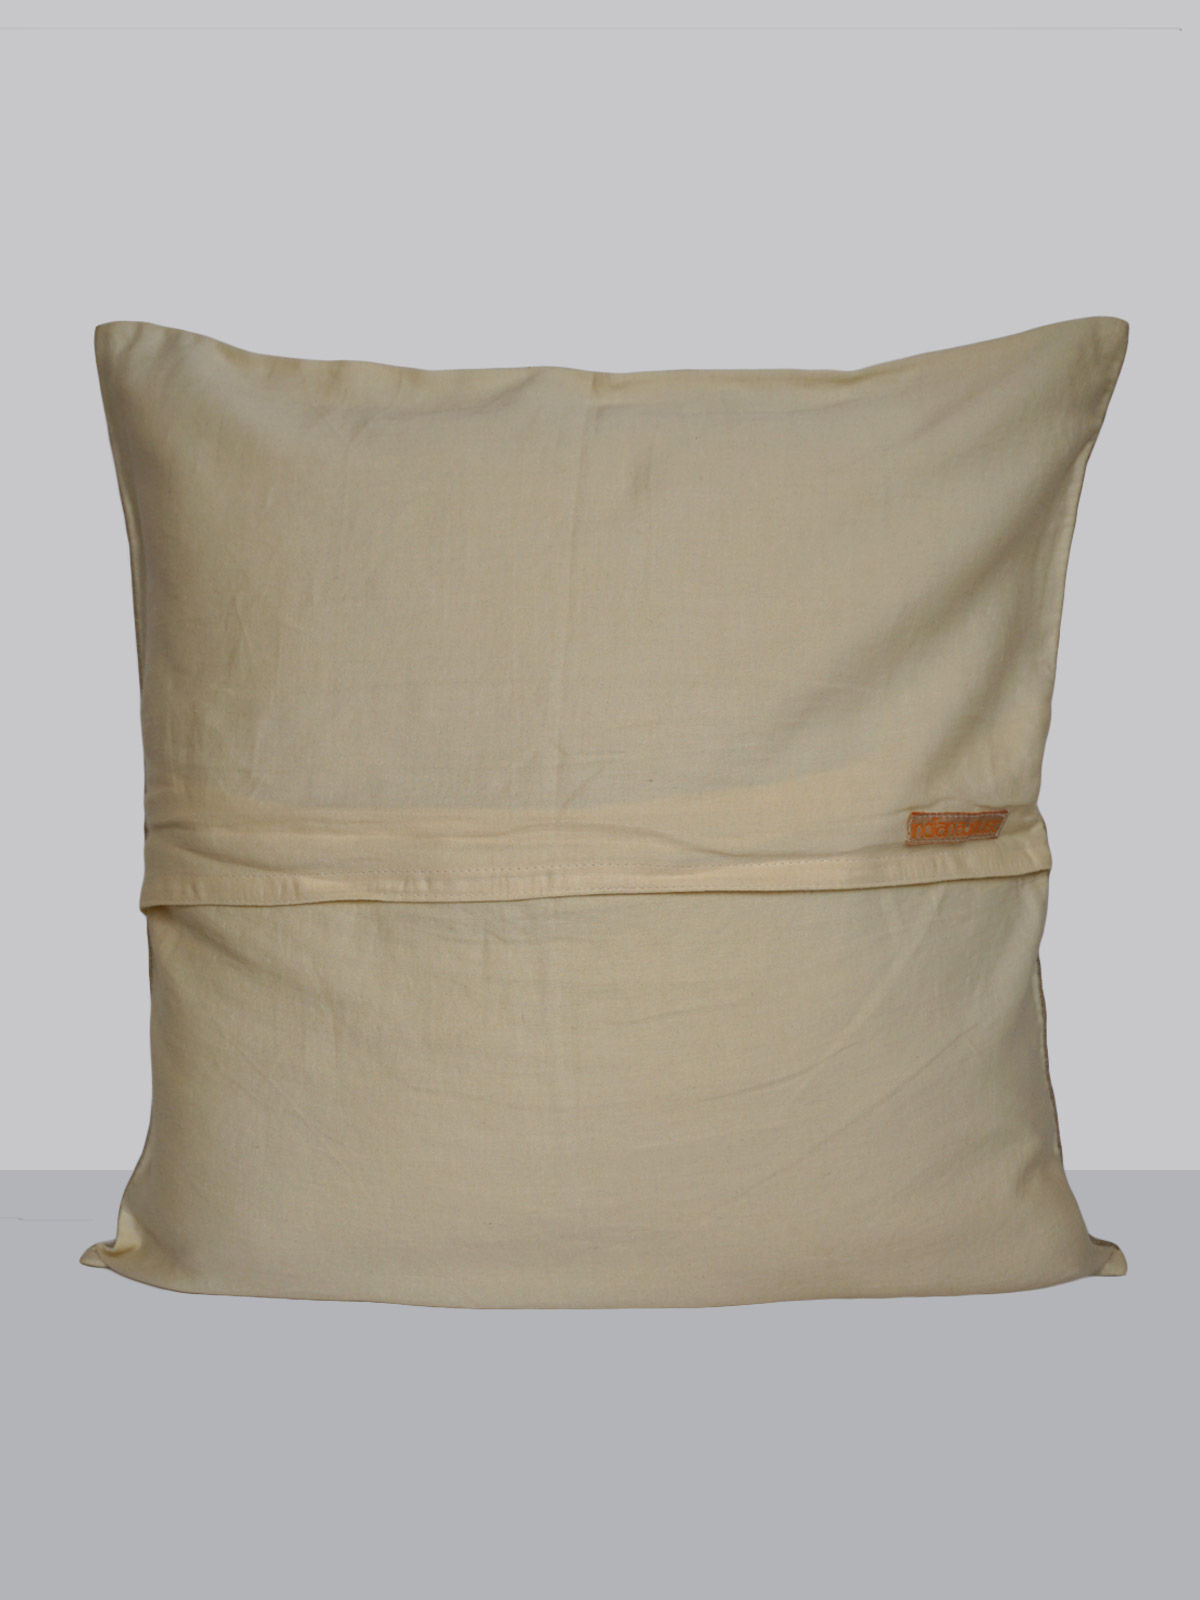 Cream linen zari embroidered floral pattern cushion cover